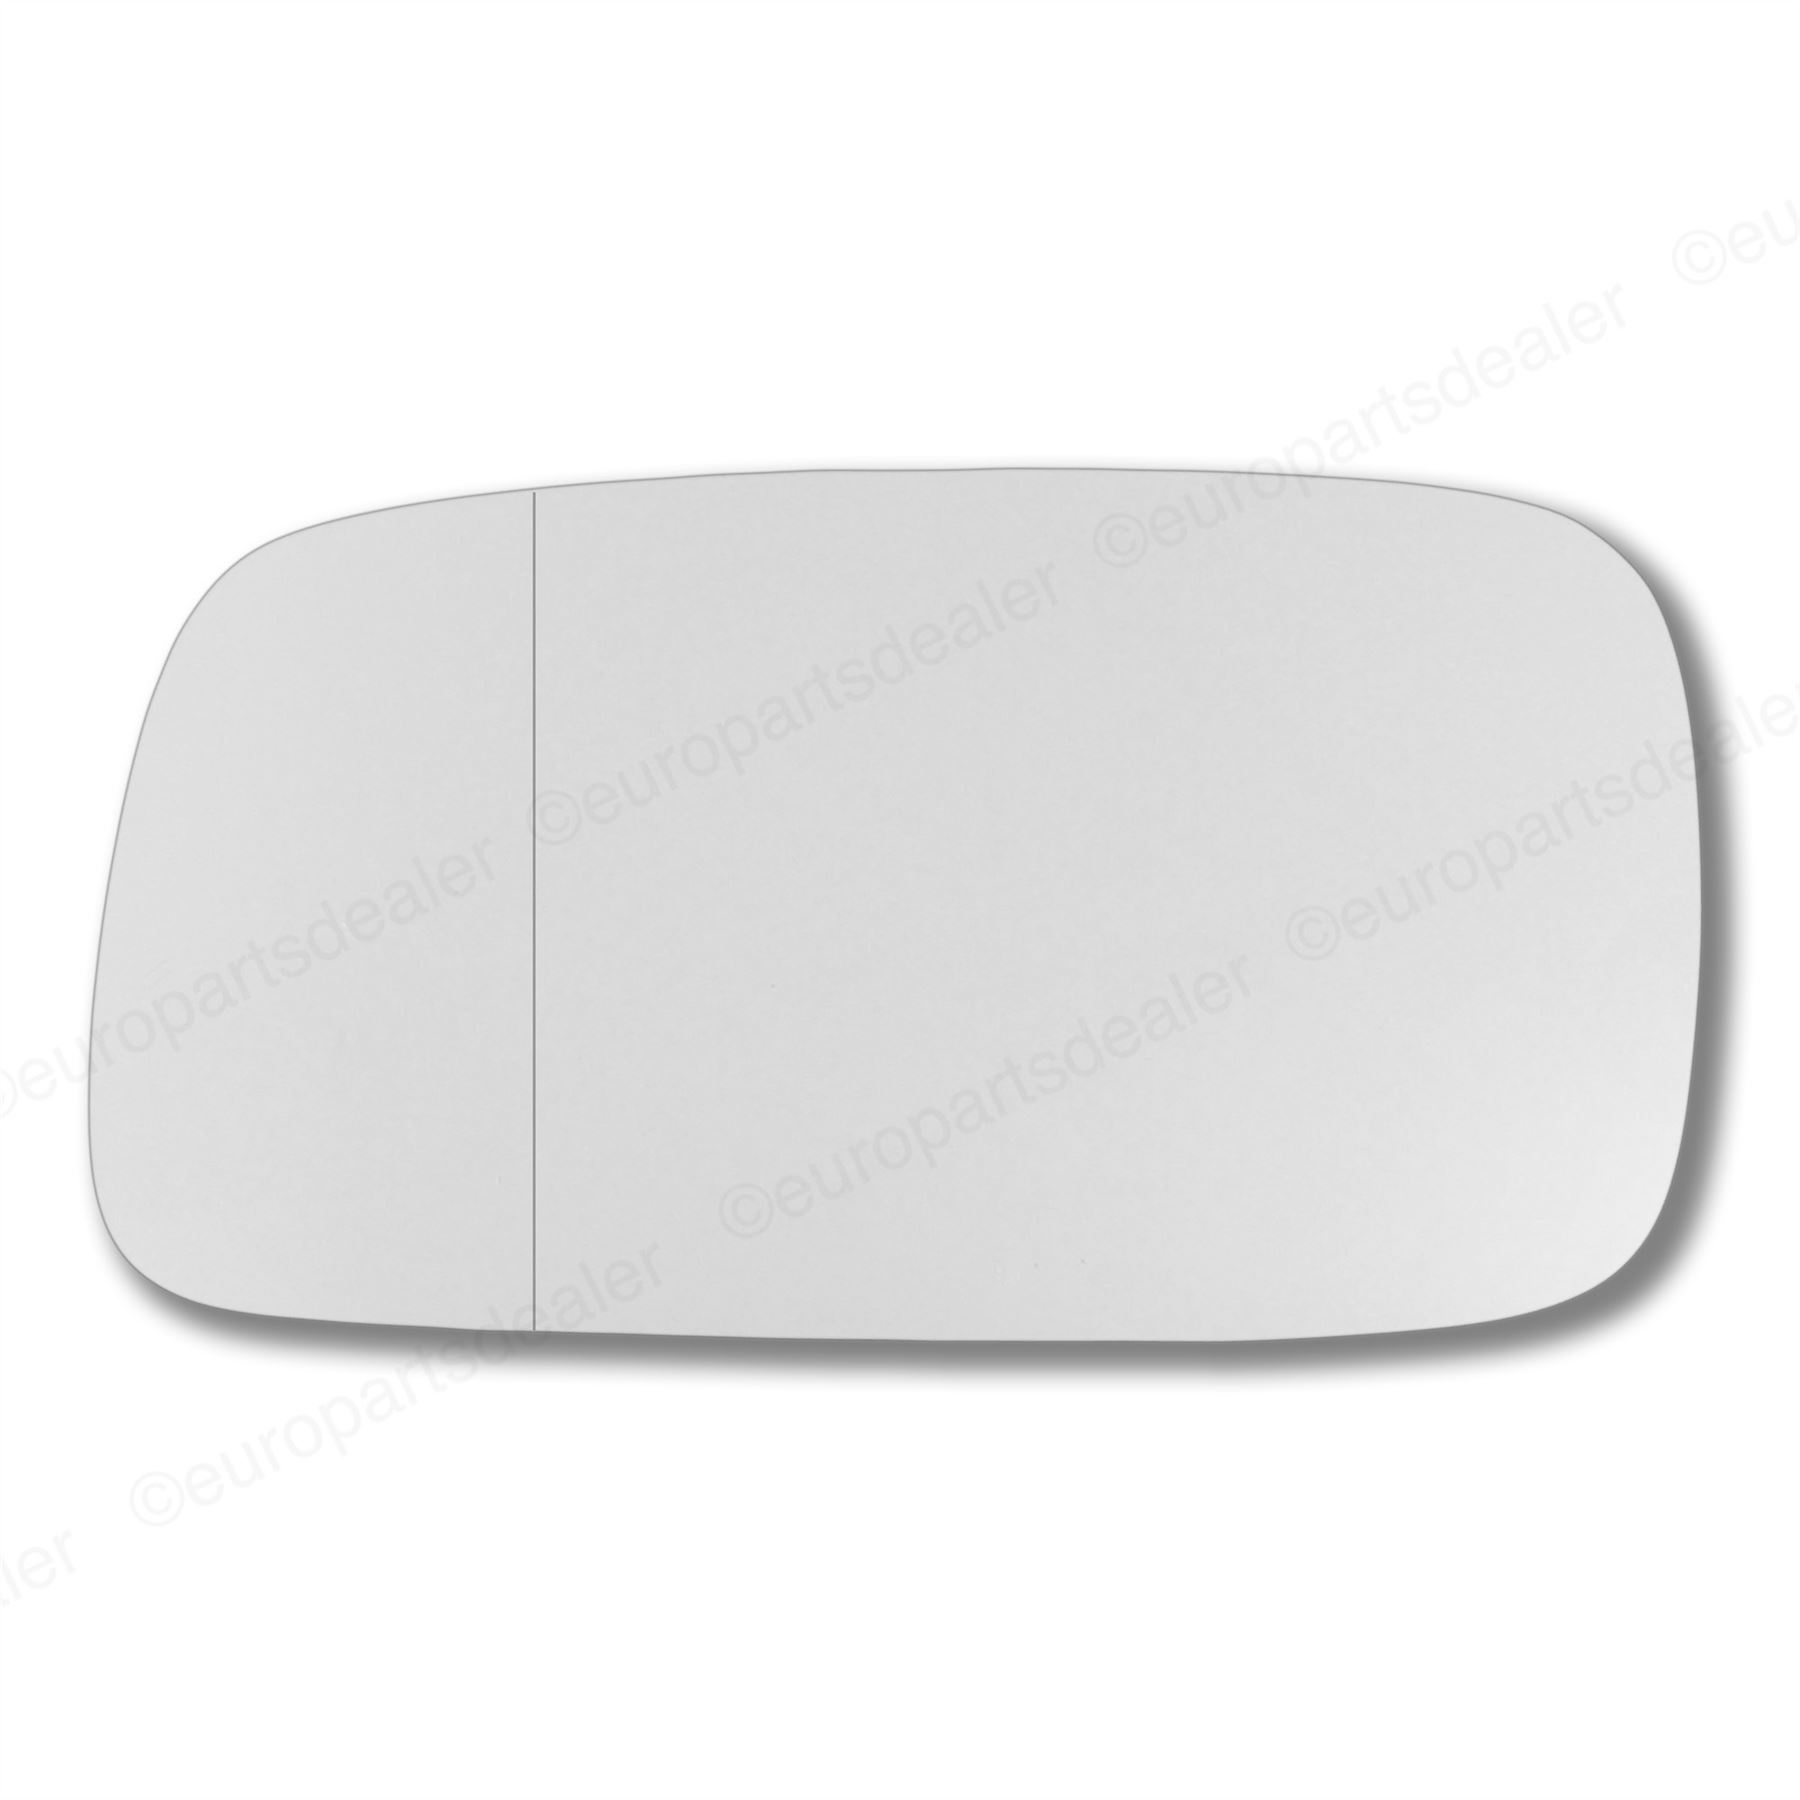 Driver Side WIDE ANGLE WING DOOR MIRROR GLASS VW Caddy 2004-2015 Stick On Right